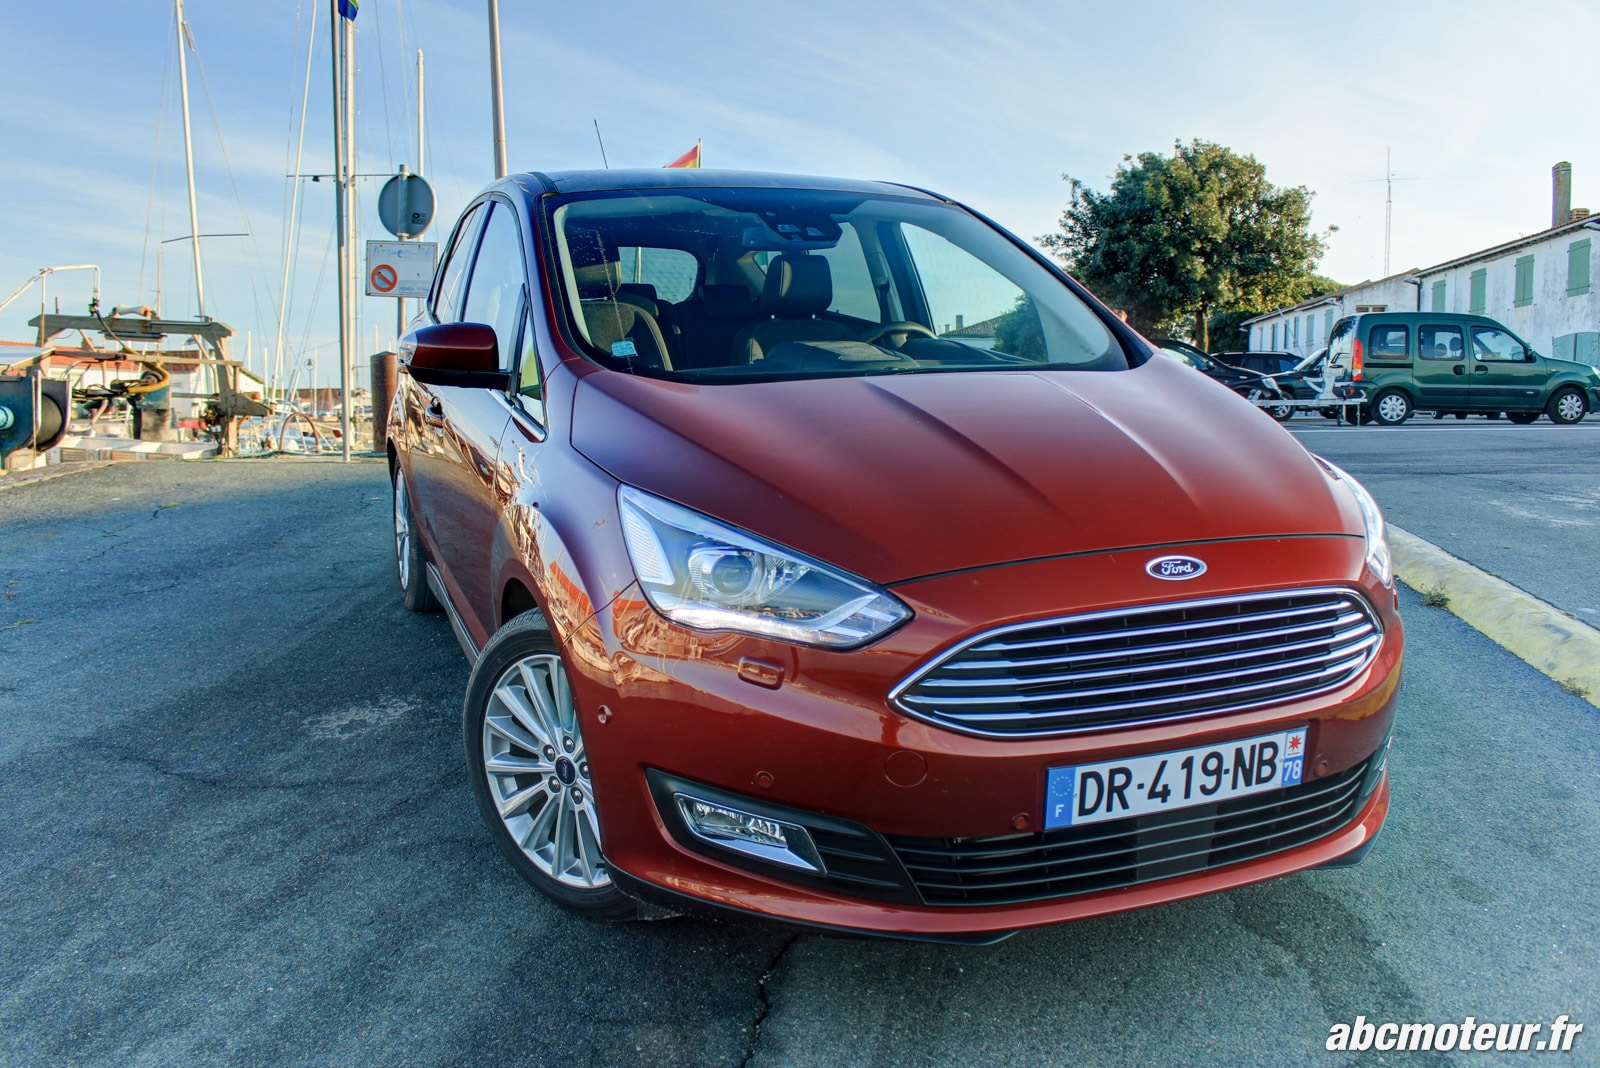 Essai Ford C-Max : un monospace à l'agrément MAXimum ?